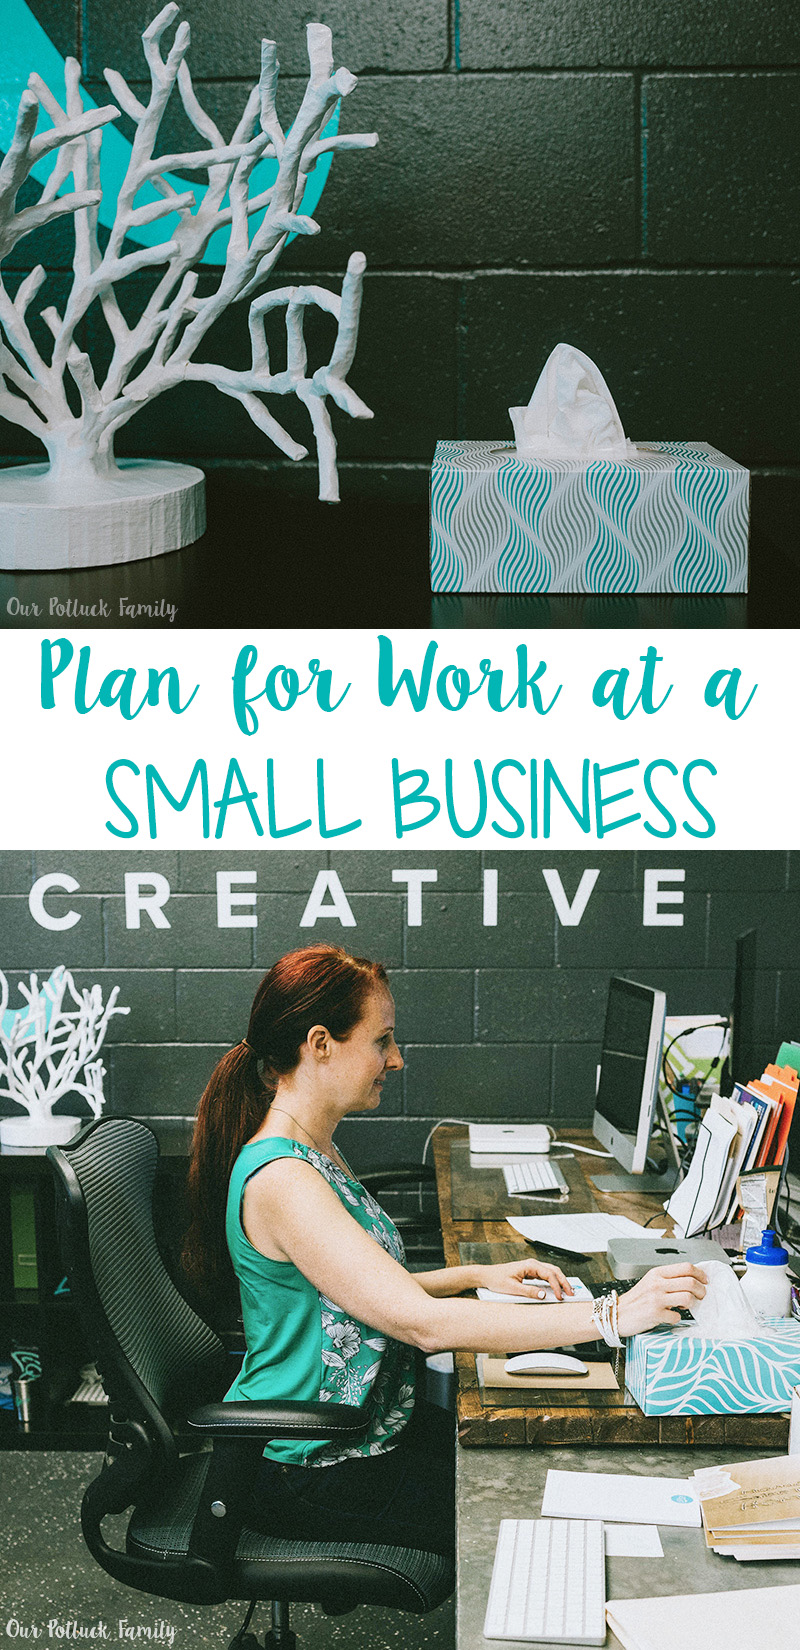 Plan for Work at a Small Business